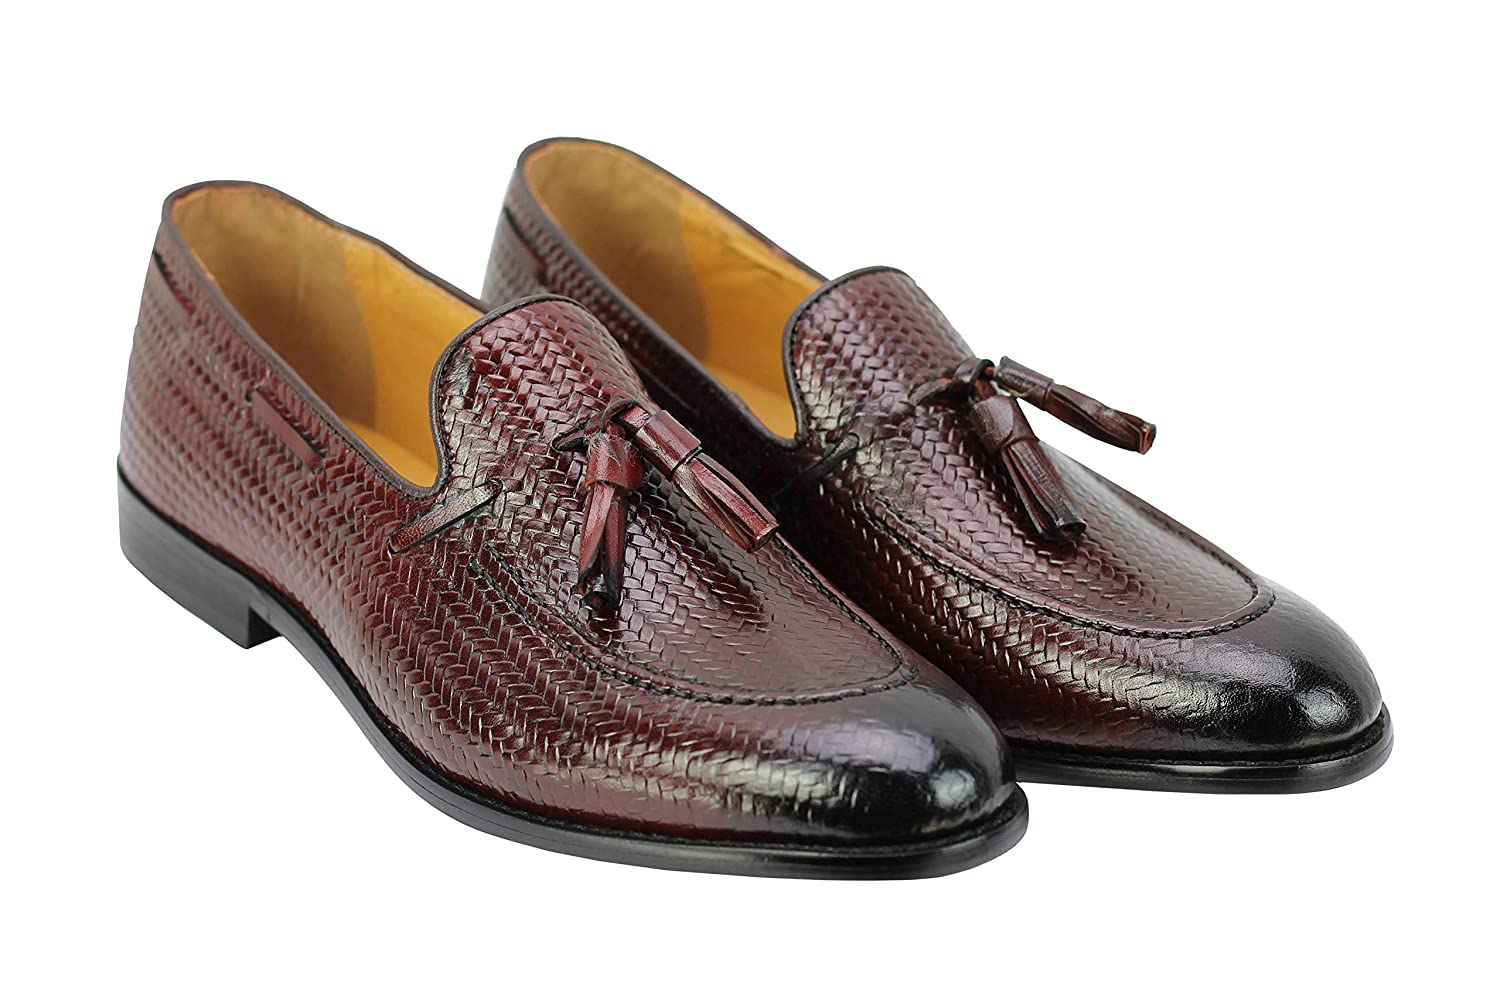 6f7f30c1421 Mens Brown Real Leather Tassel Loafers Smart Casual Snakeskin Print Retro  MOD Slip on Shoes  Amazon.co.uk  Shoes   Bags